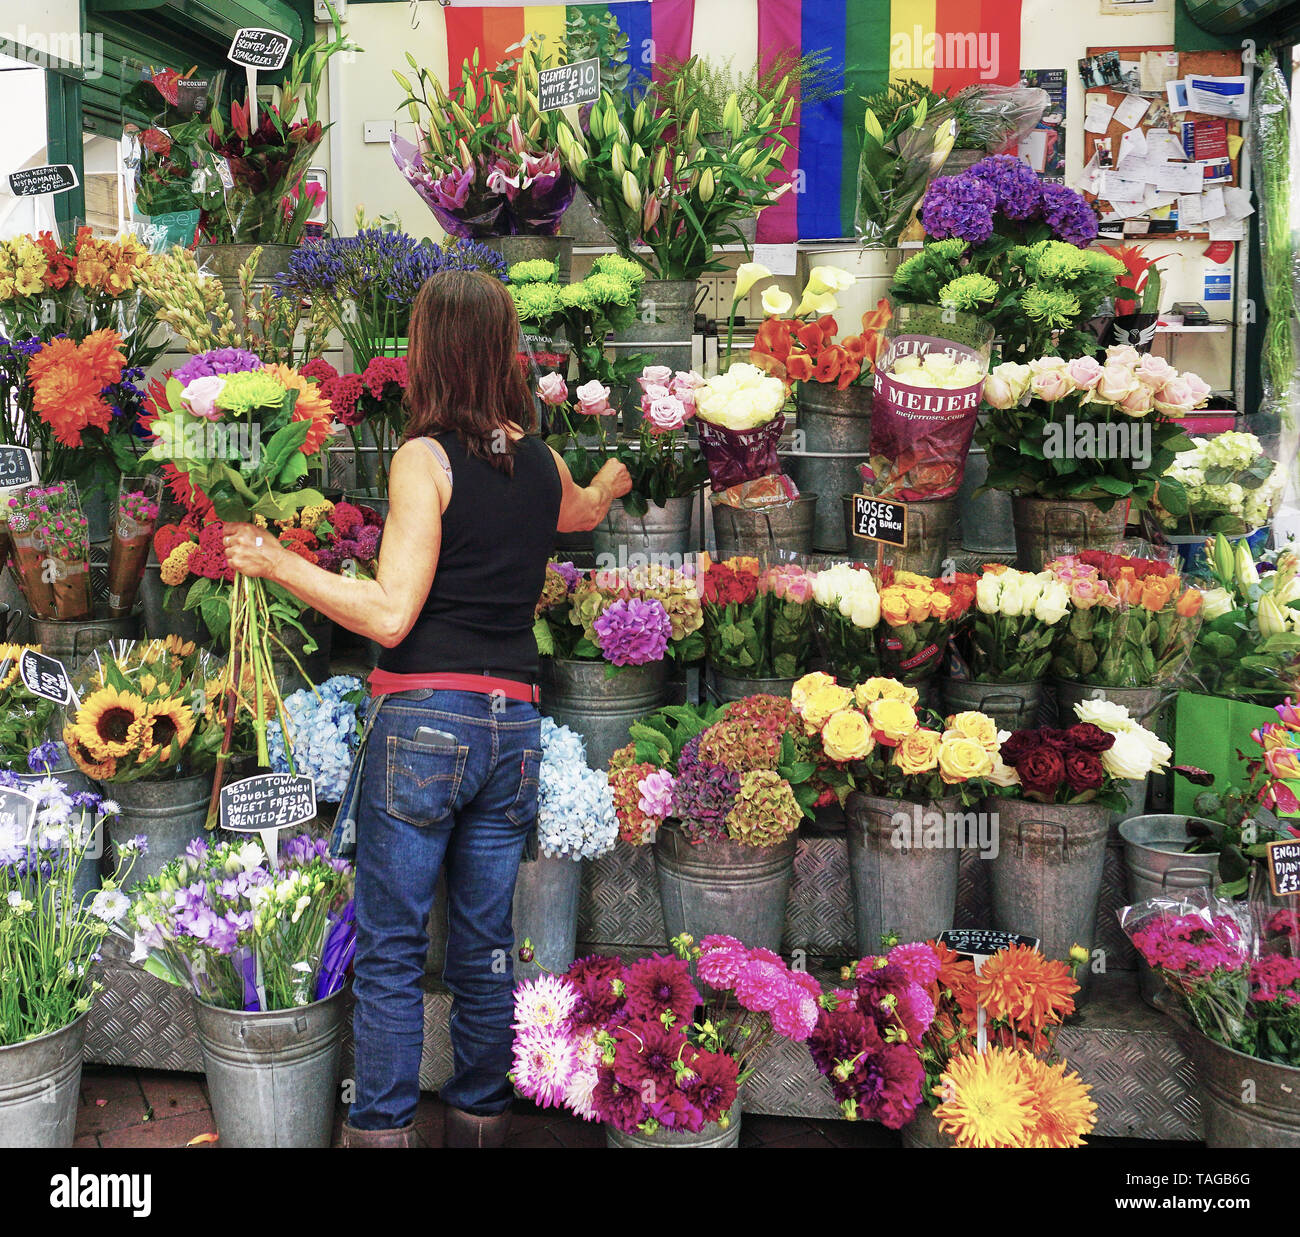 Woman selling flowers at Kiosk in London, England - Stock Image